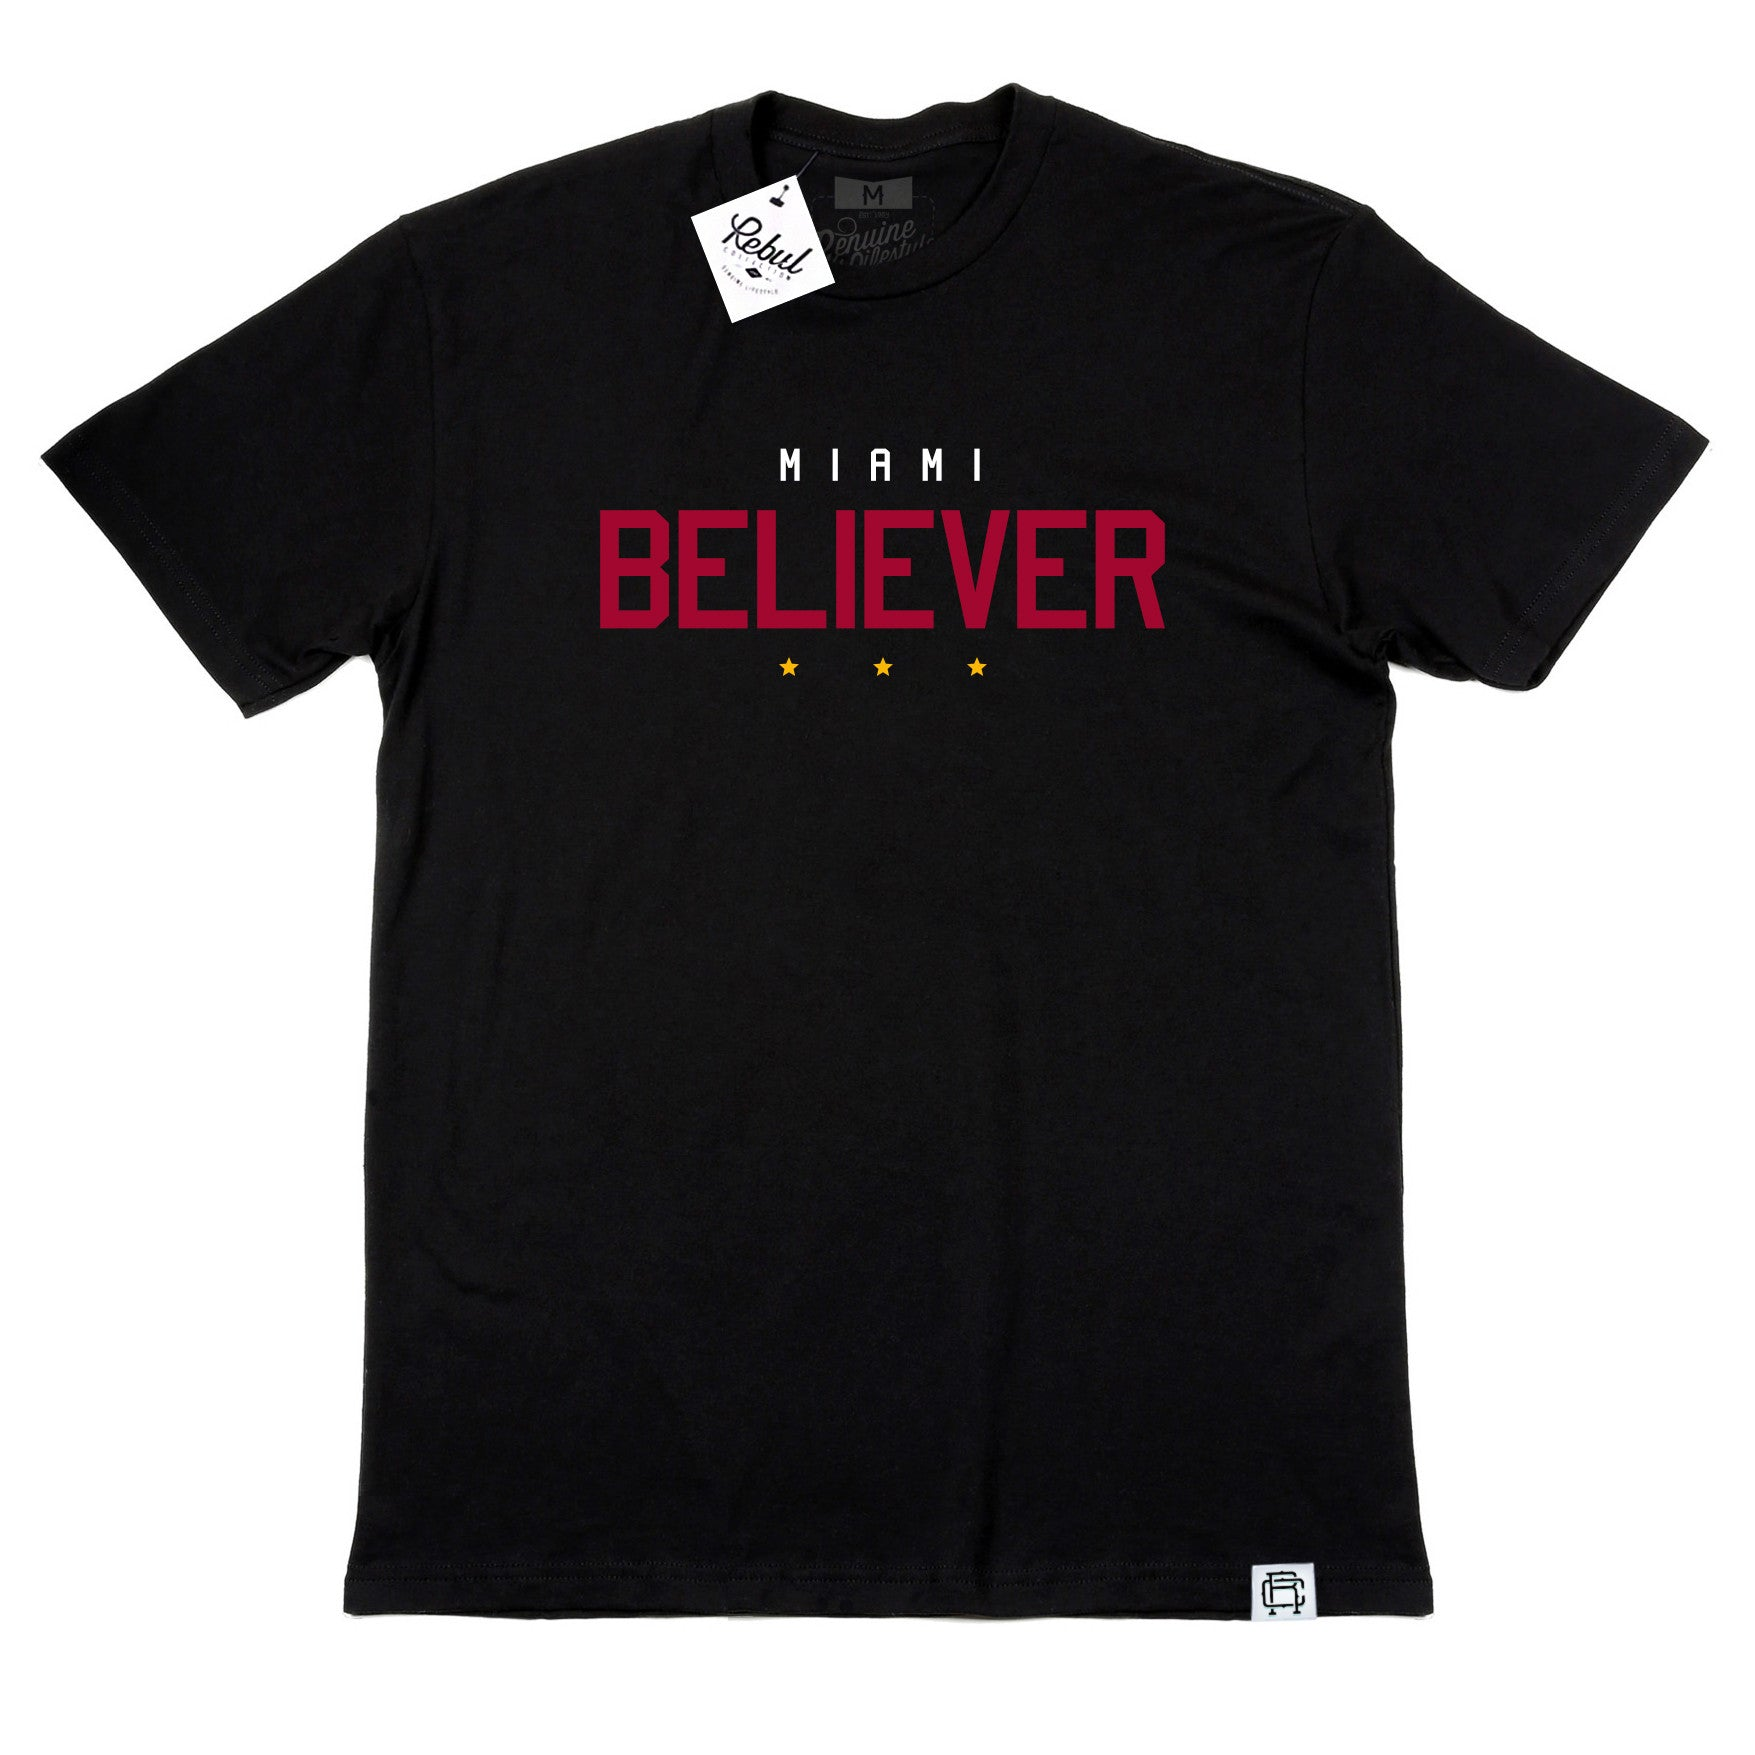 Rebul Collection Miami Heat Believer T-Shirt Black